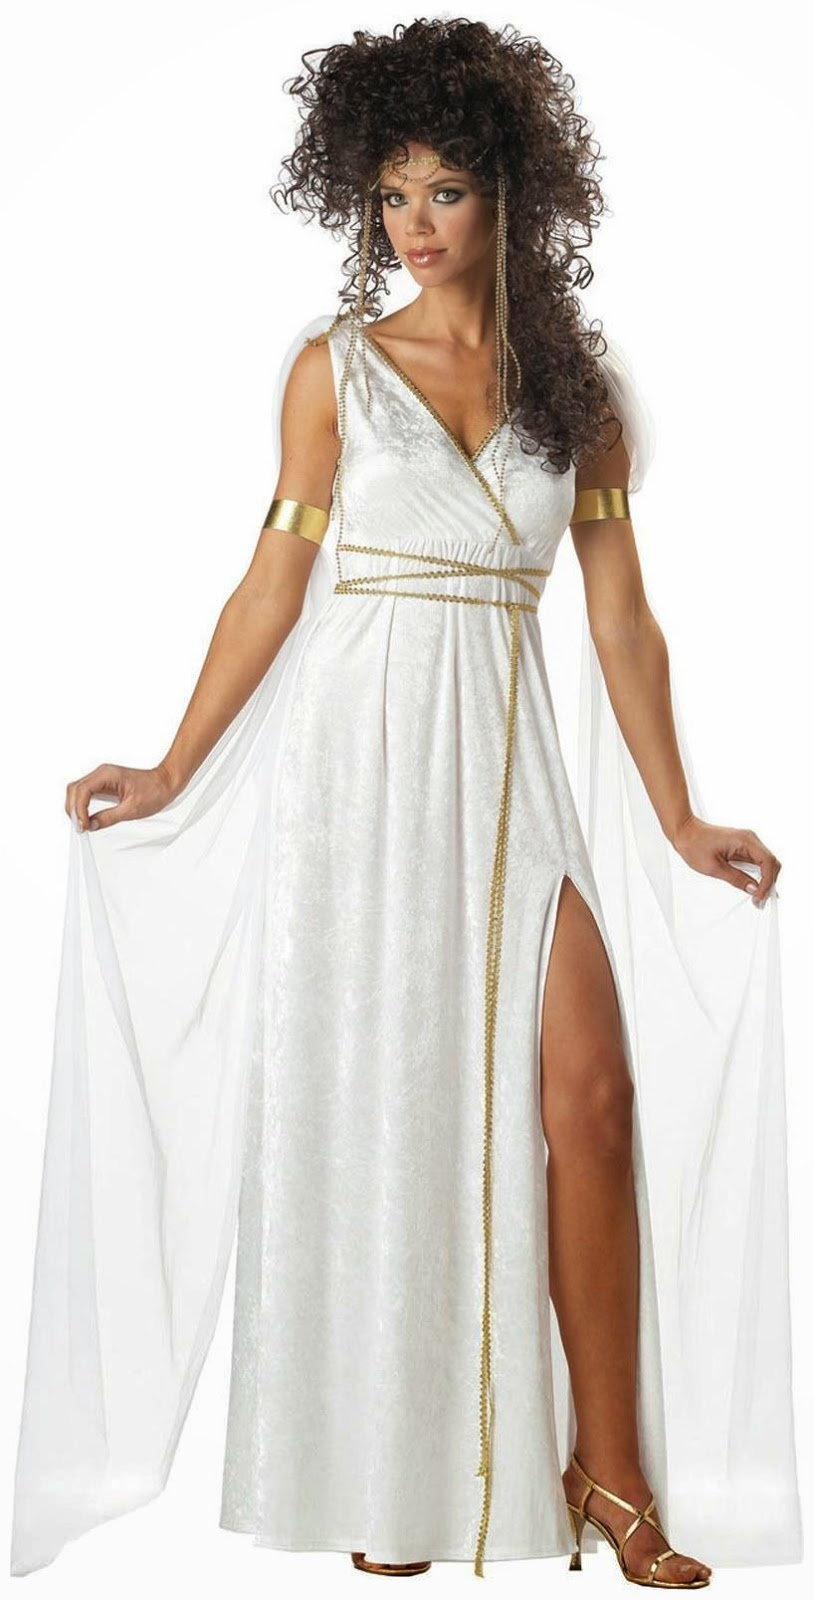 athenian-goddess-greek-costume